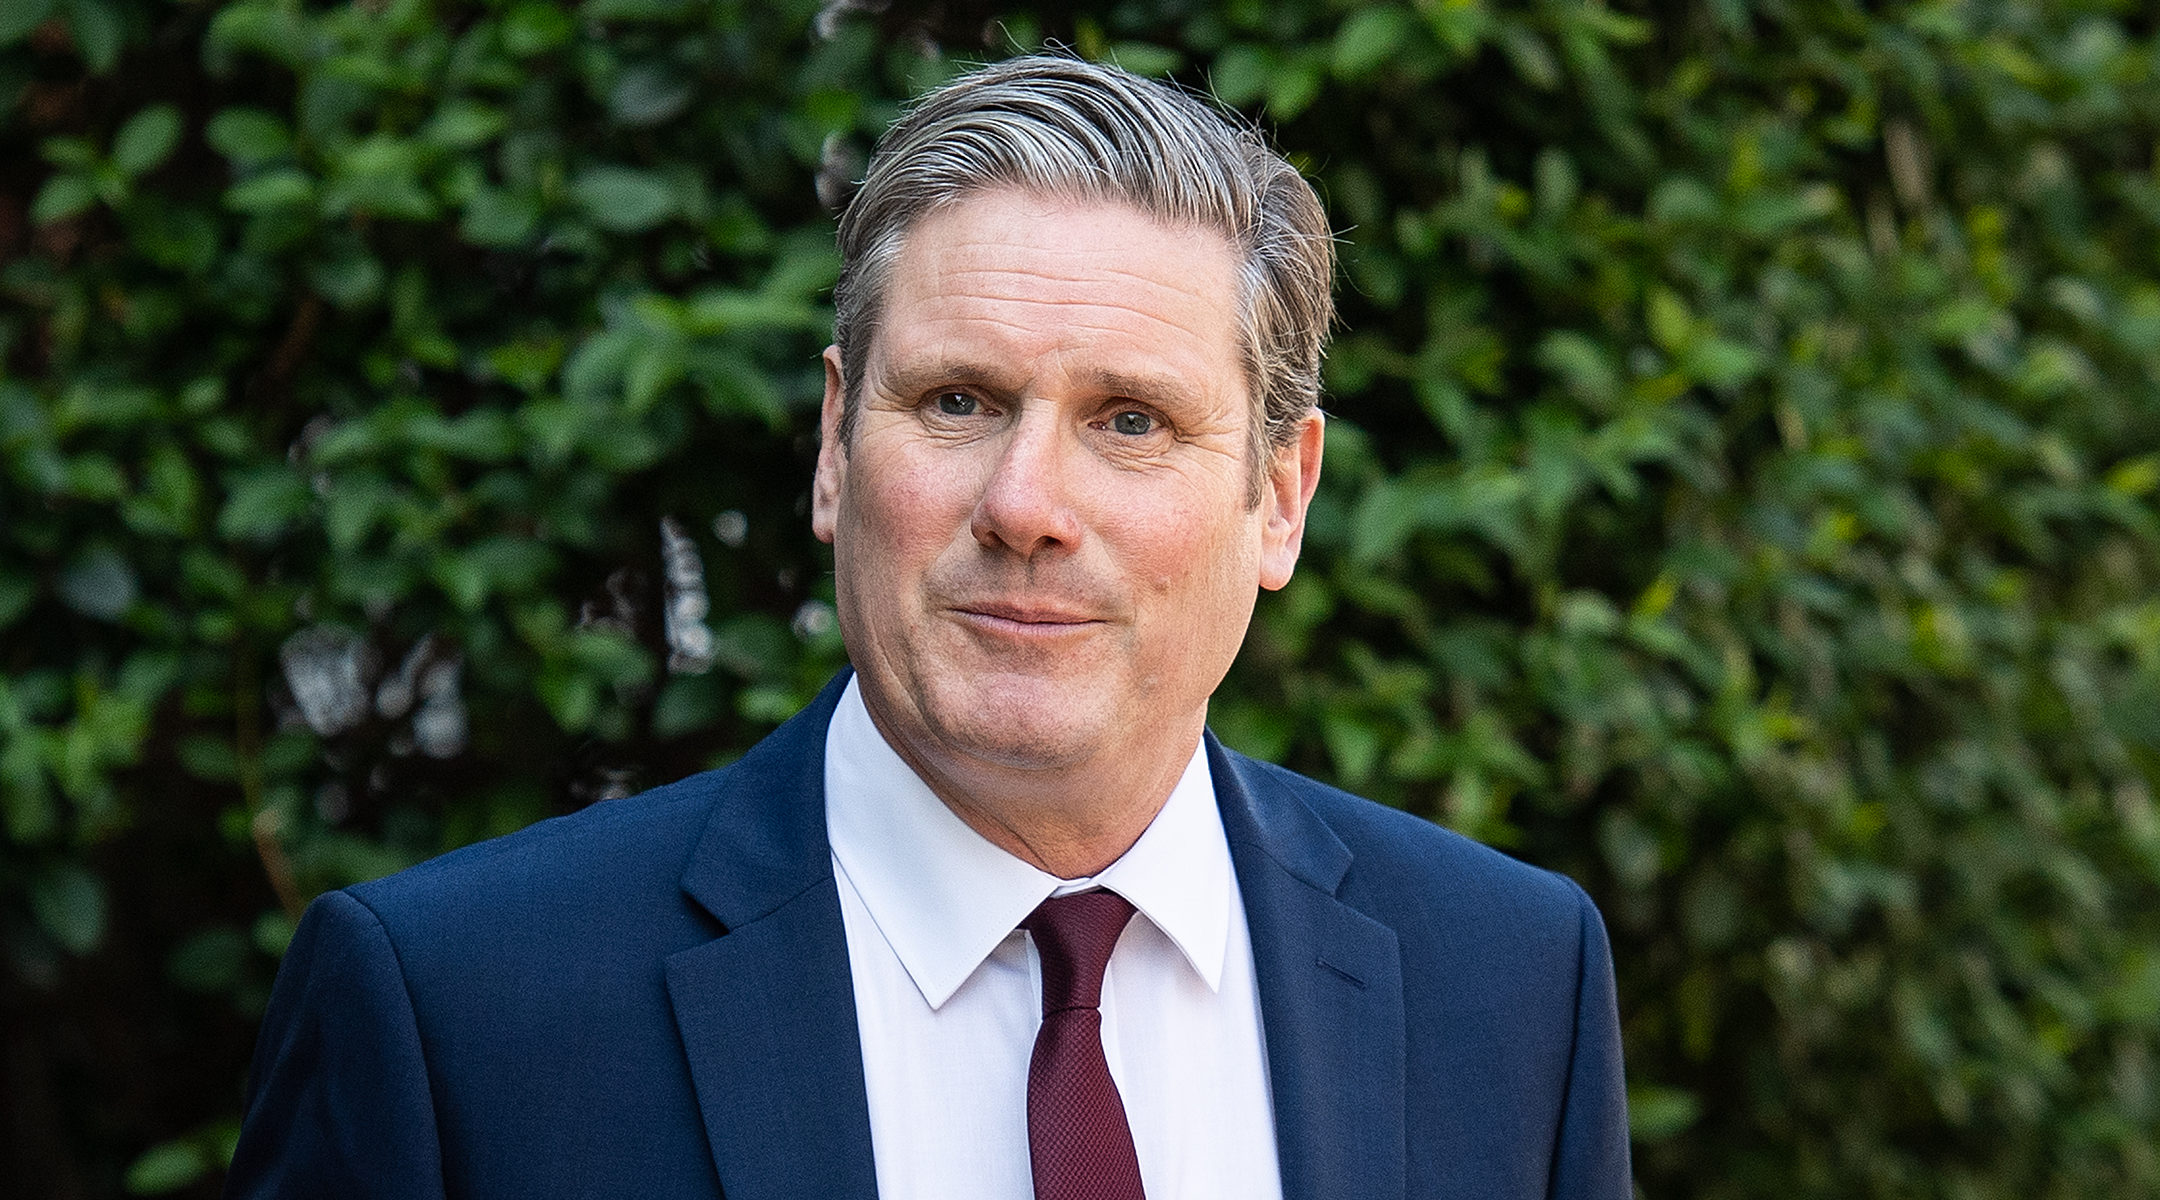 Labour Party leader Keir Starmer leaving his home in London, UK on April 22, 2020. (Leon Neal/Getty Images)